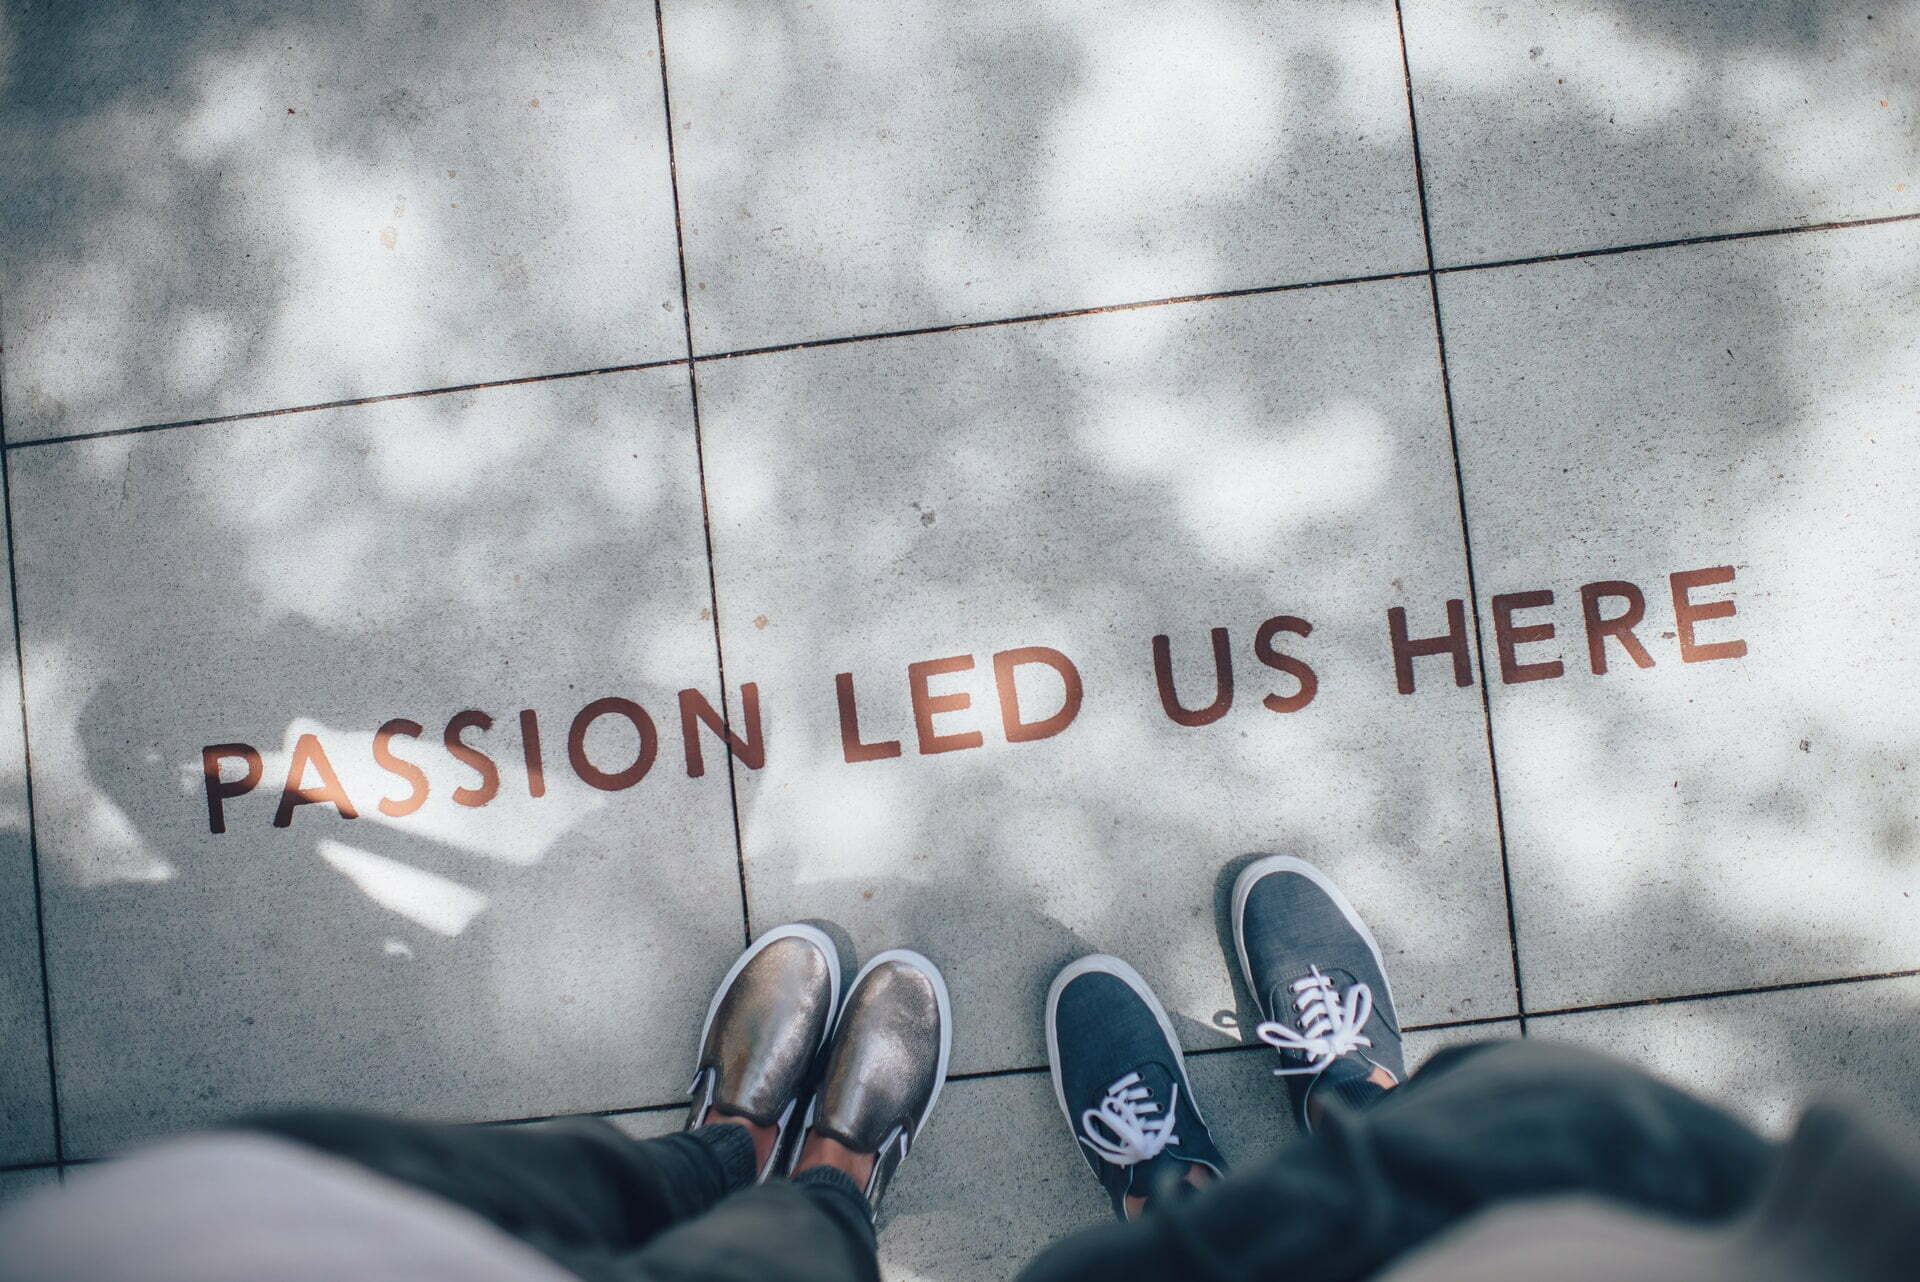 passion led us here written on the sidewalk